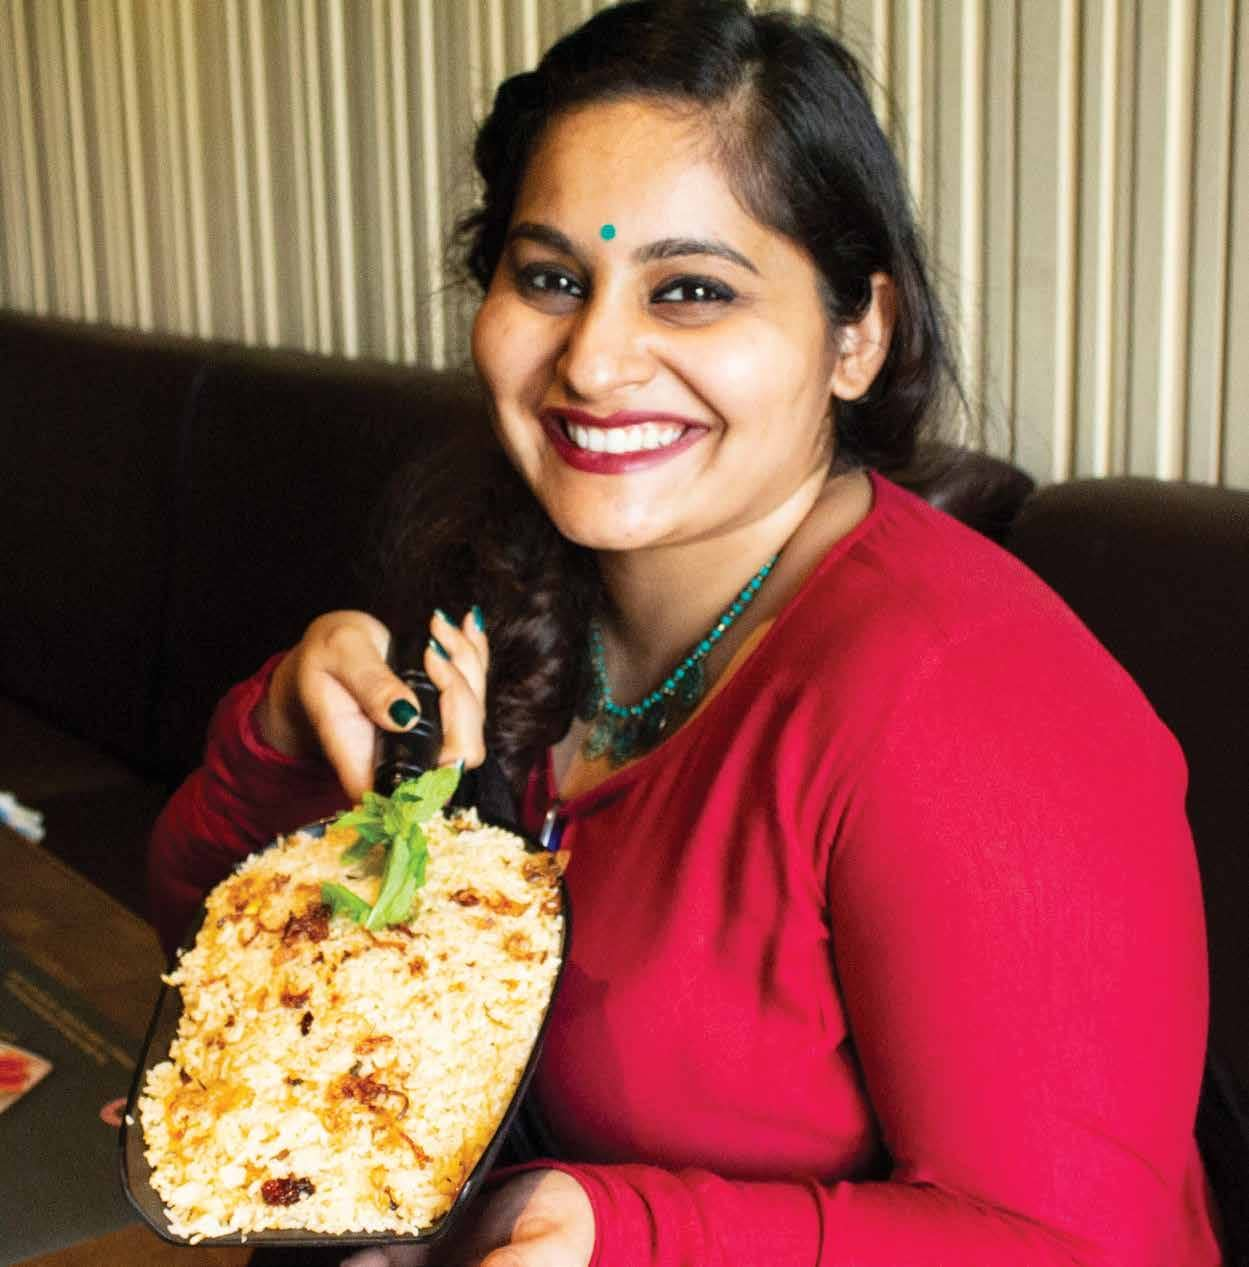 Introducing: Neha Loves To Eat